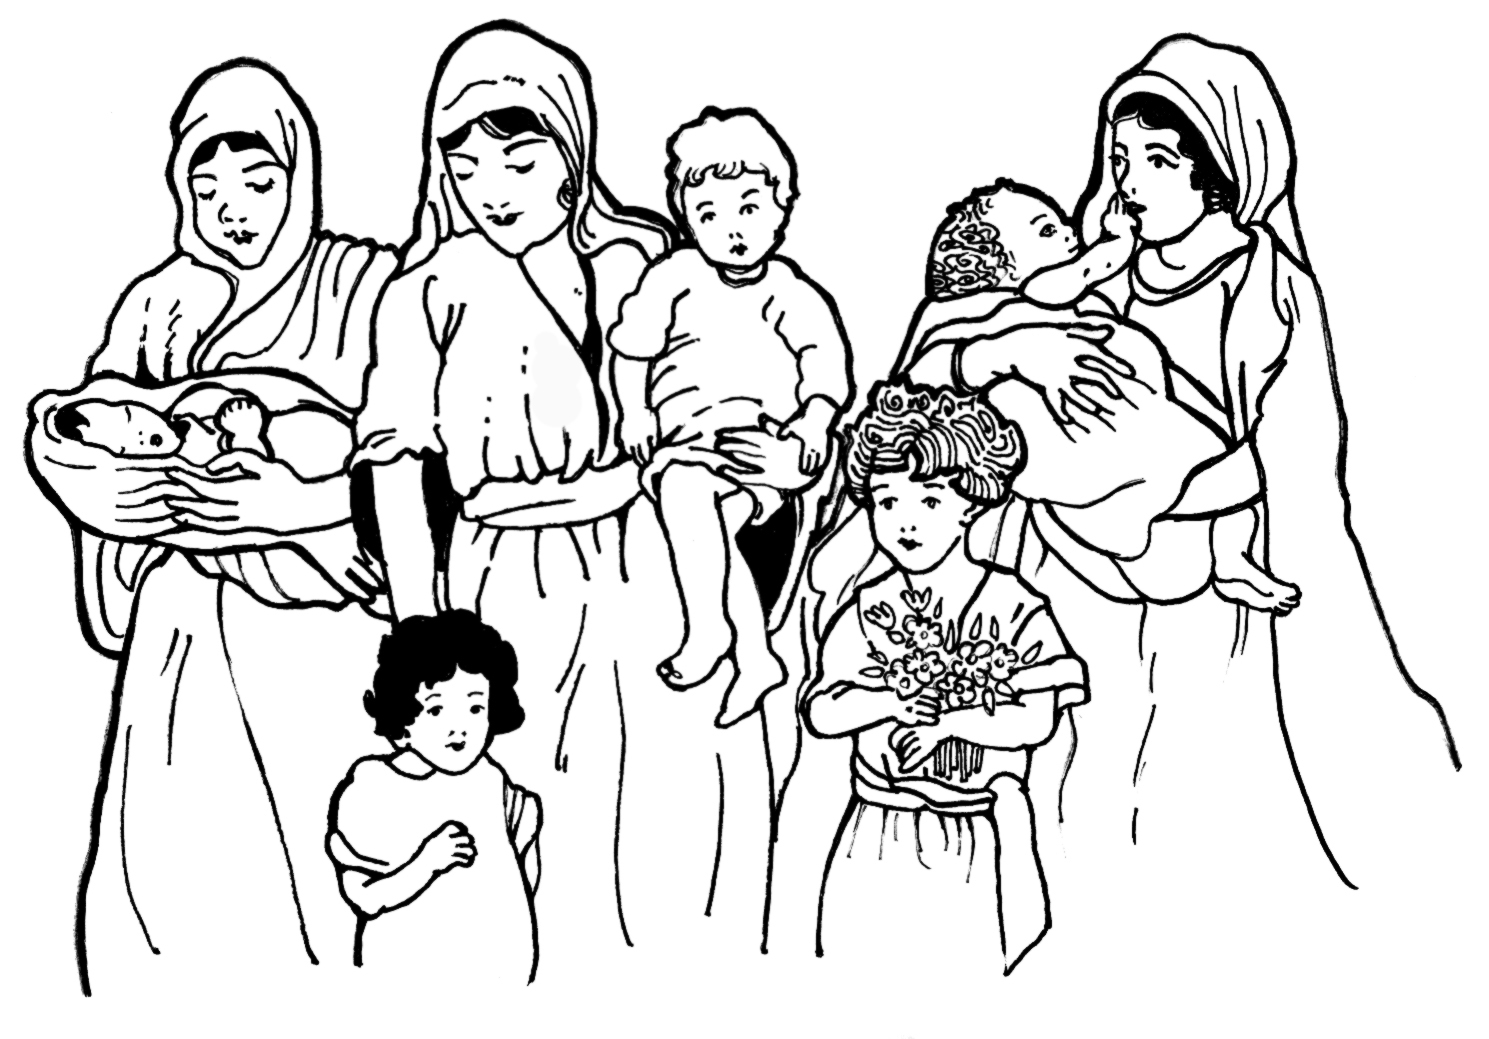 Mothers and Children From the Bible